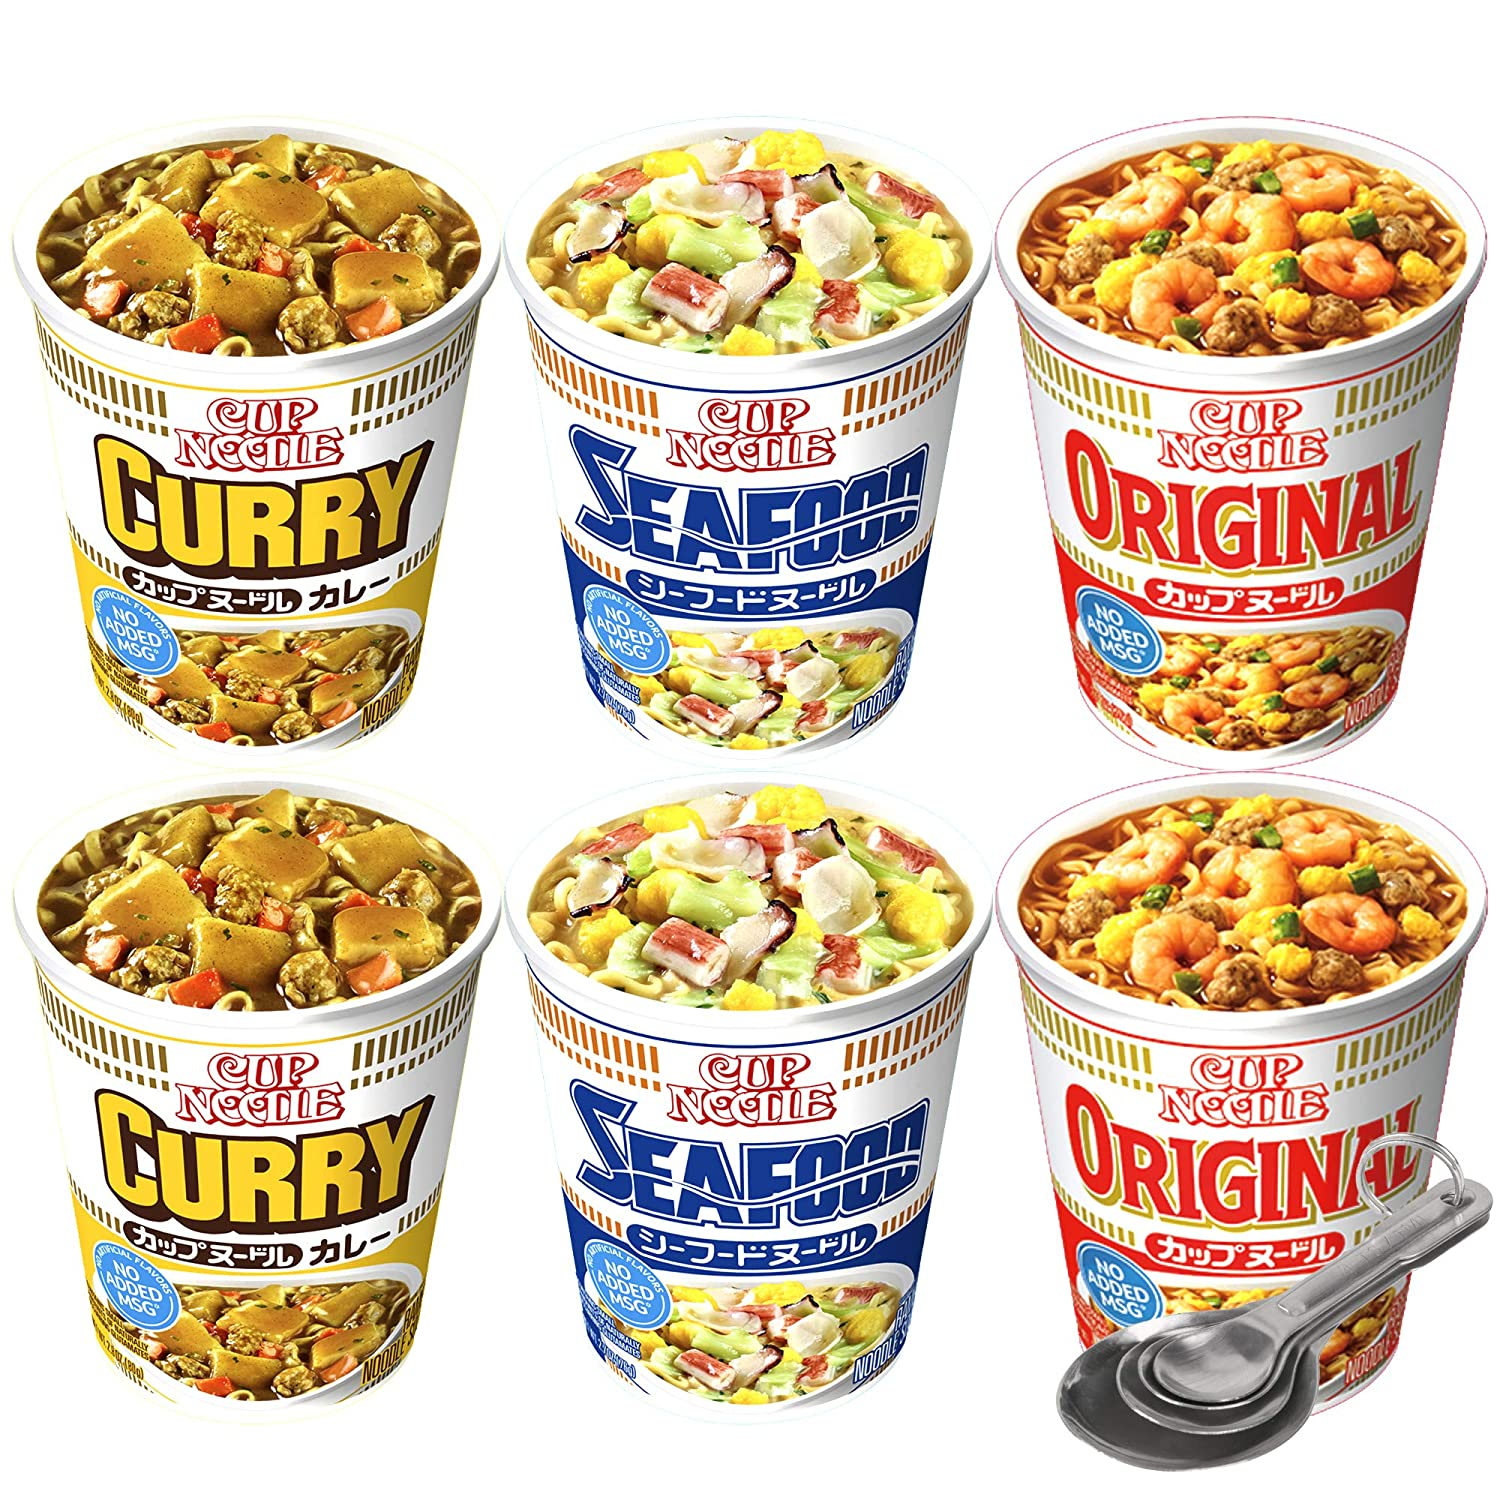 [PACK OF 6] [FREE MEASURING SPOON] JAPAN NISSIN CUP OF NOODLE MIX PACK (ORIGINAL, CURRY, SEAFOOD)